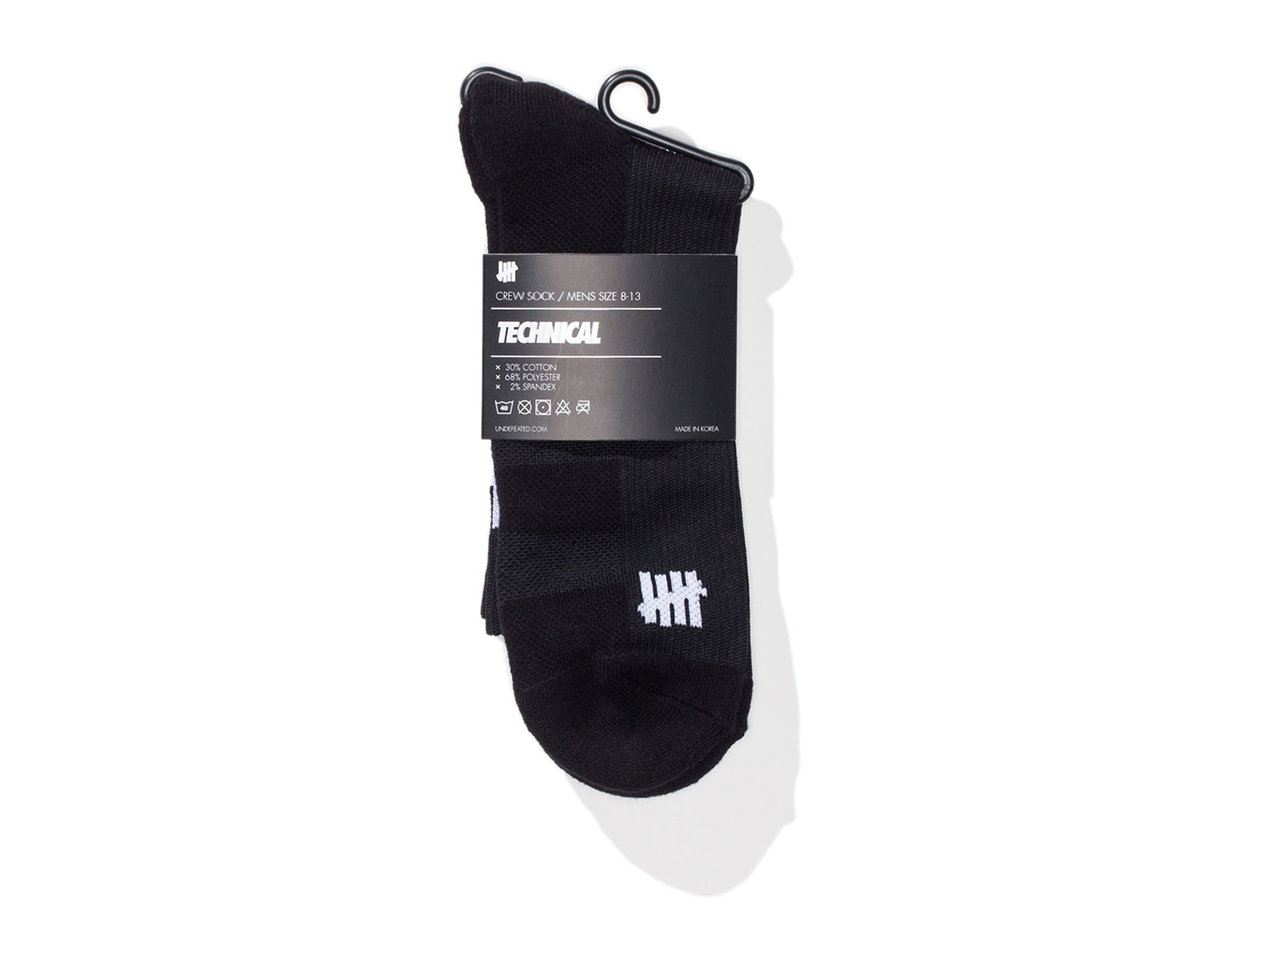 undefeated_undsocks002_technical_crew_black